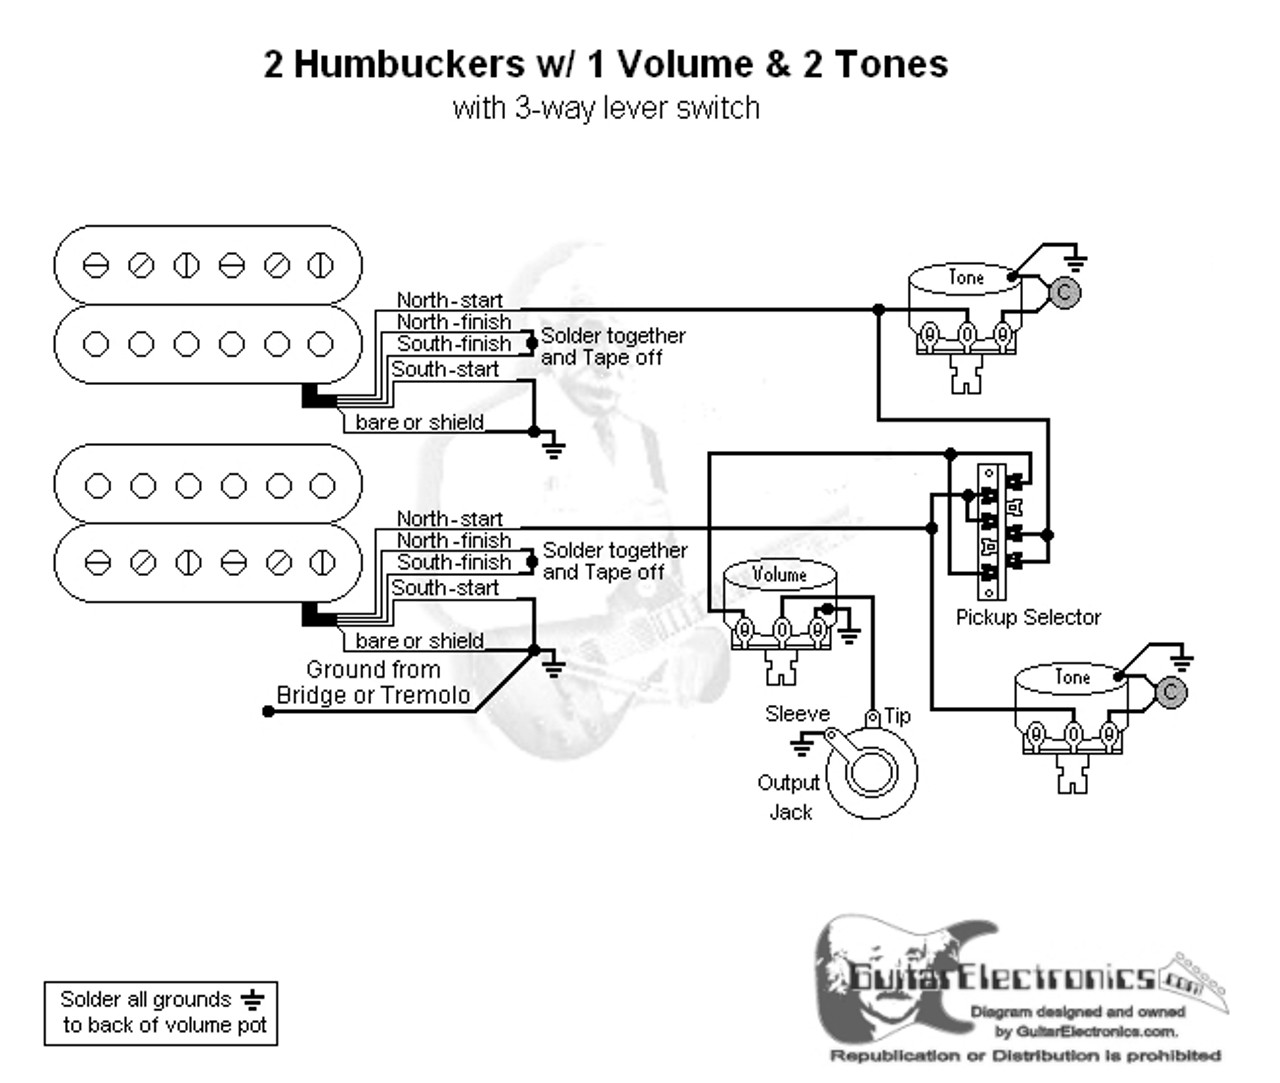 2 Humbuckers/3-Way Lever Switch/1 Volume/2 Tones on fender cyclone ii wiring diagram, vintage diagram, fender scn pickup wiring diagram, active pickups wiring diagram, fender pot wiring, fender stratocaster parts diagram, fender s1 switch wiring diagram, fender guitar wiring diagrams, fender jaguar bass wiring diagram,